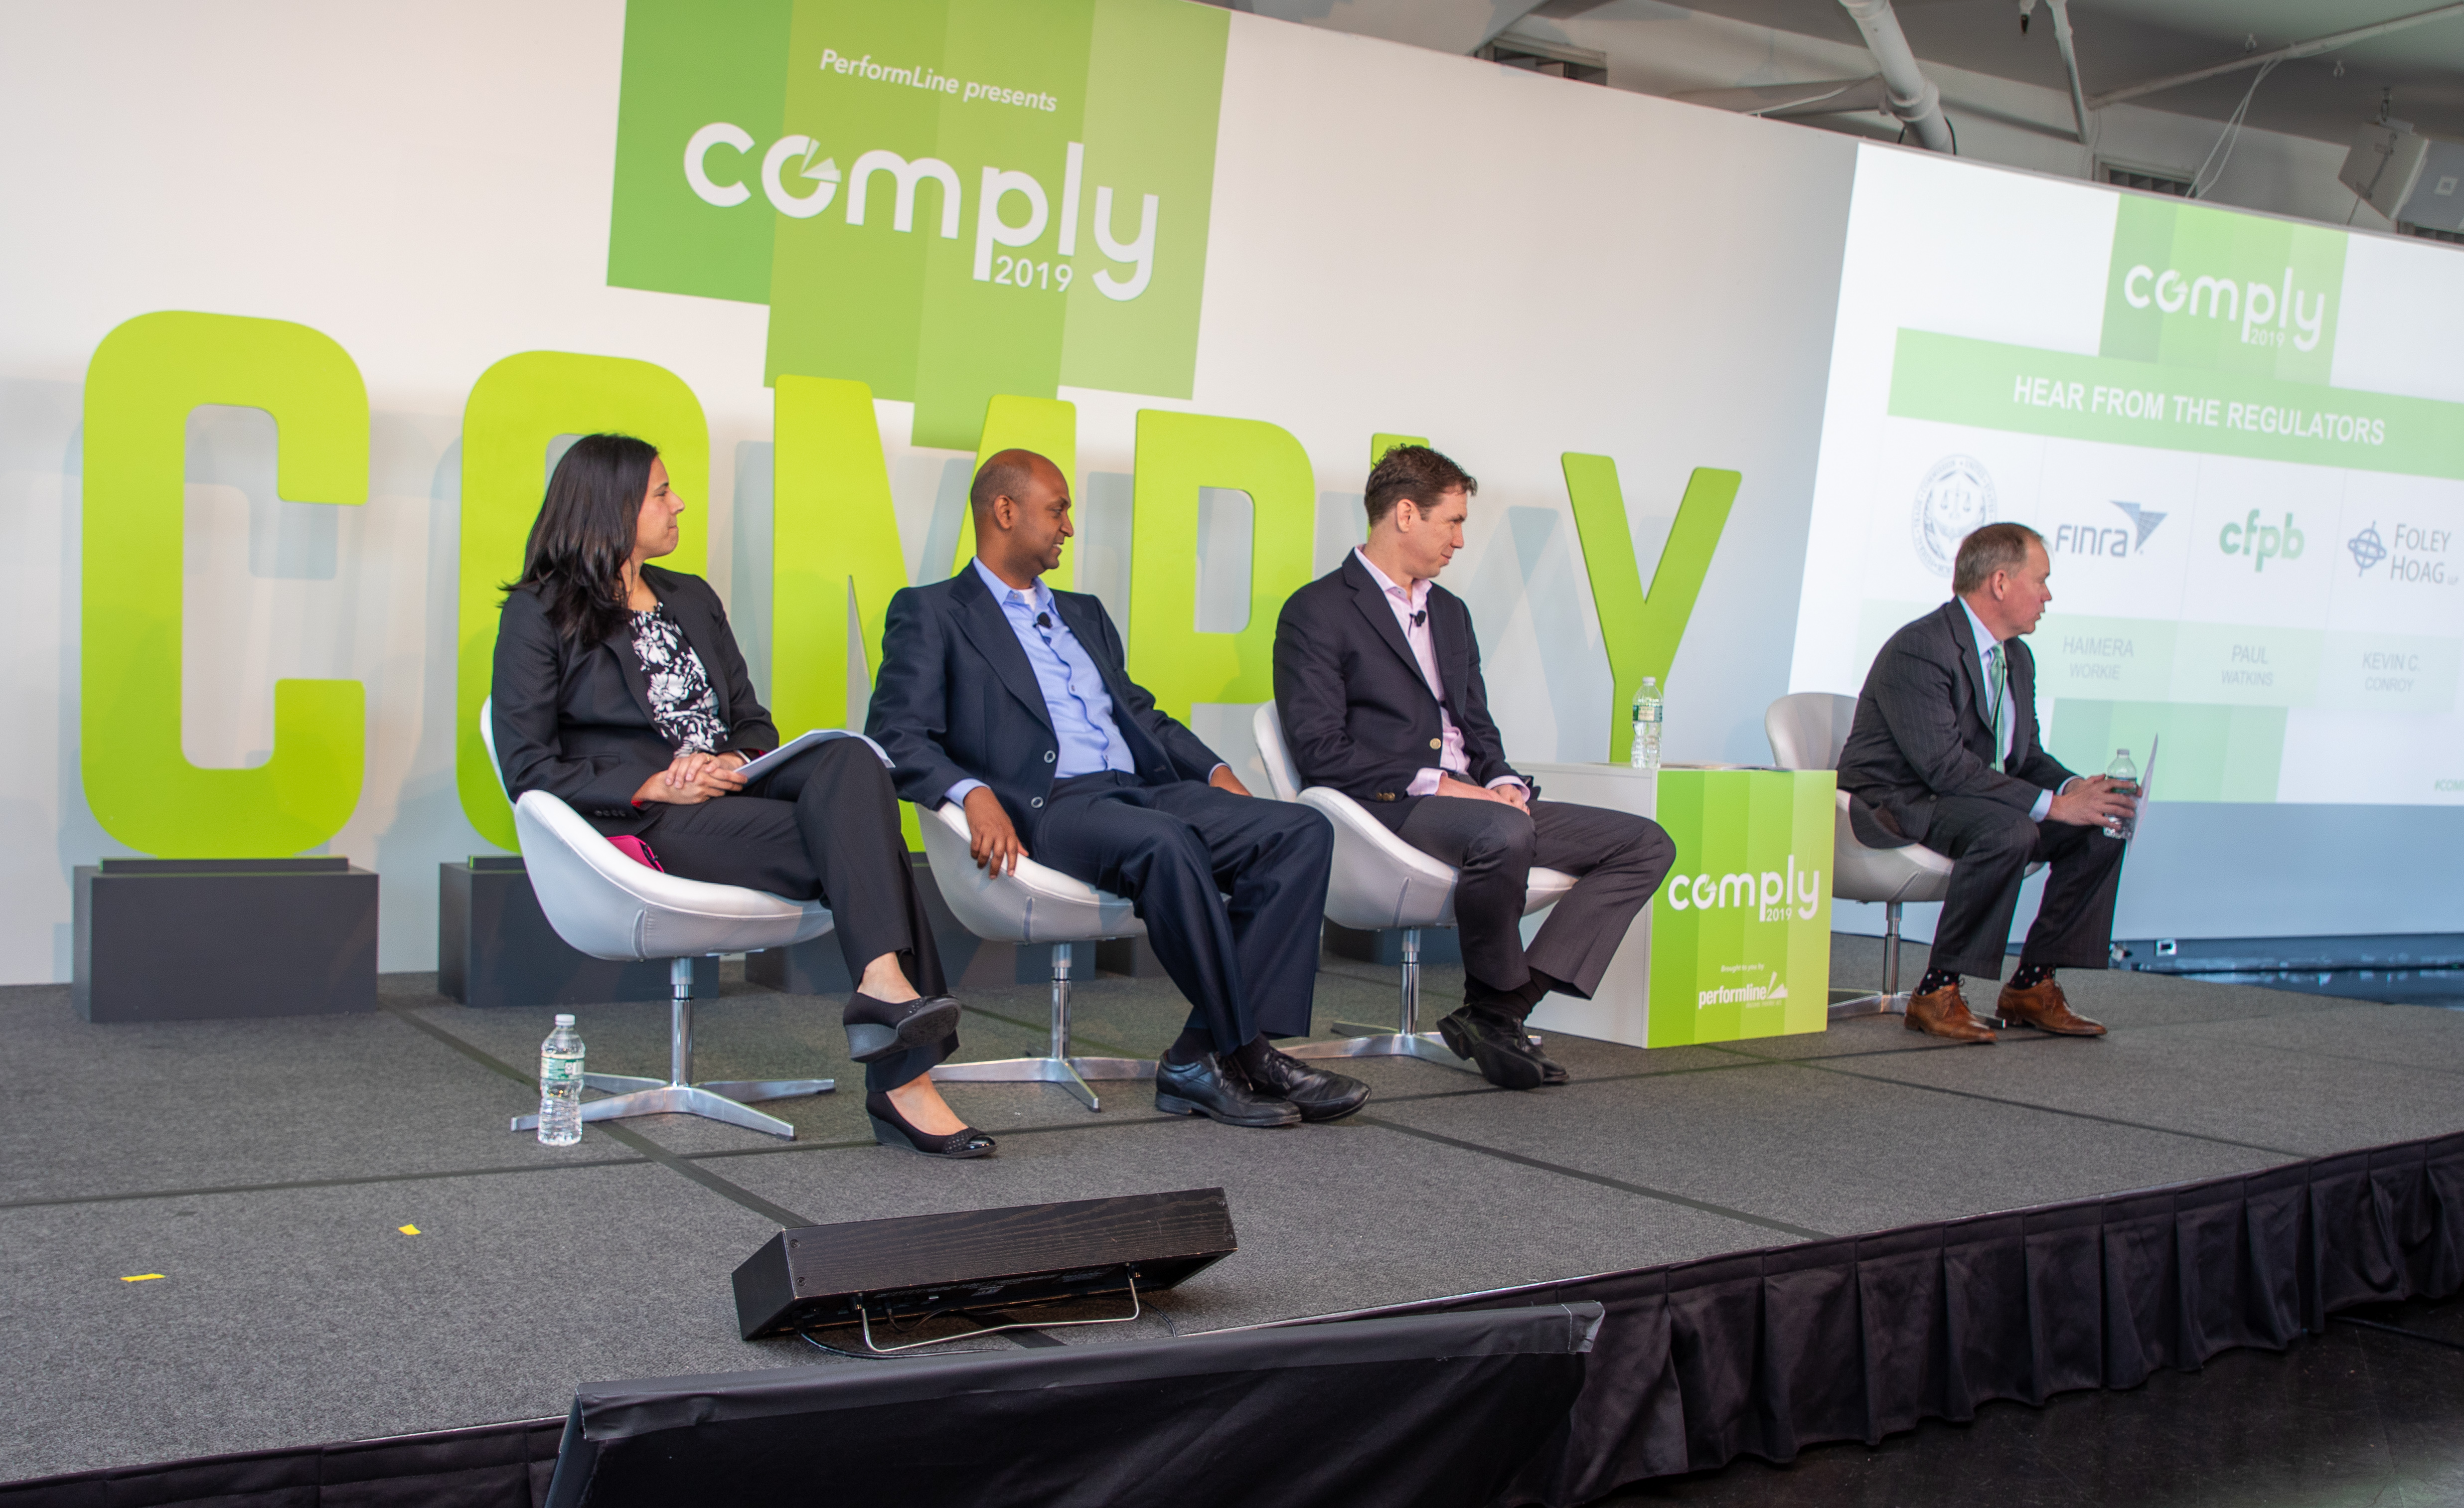 COMPLY2019 Recap: Hear From the Regulators